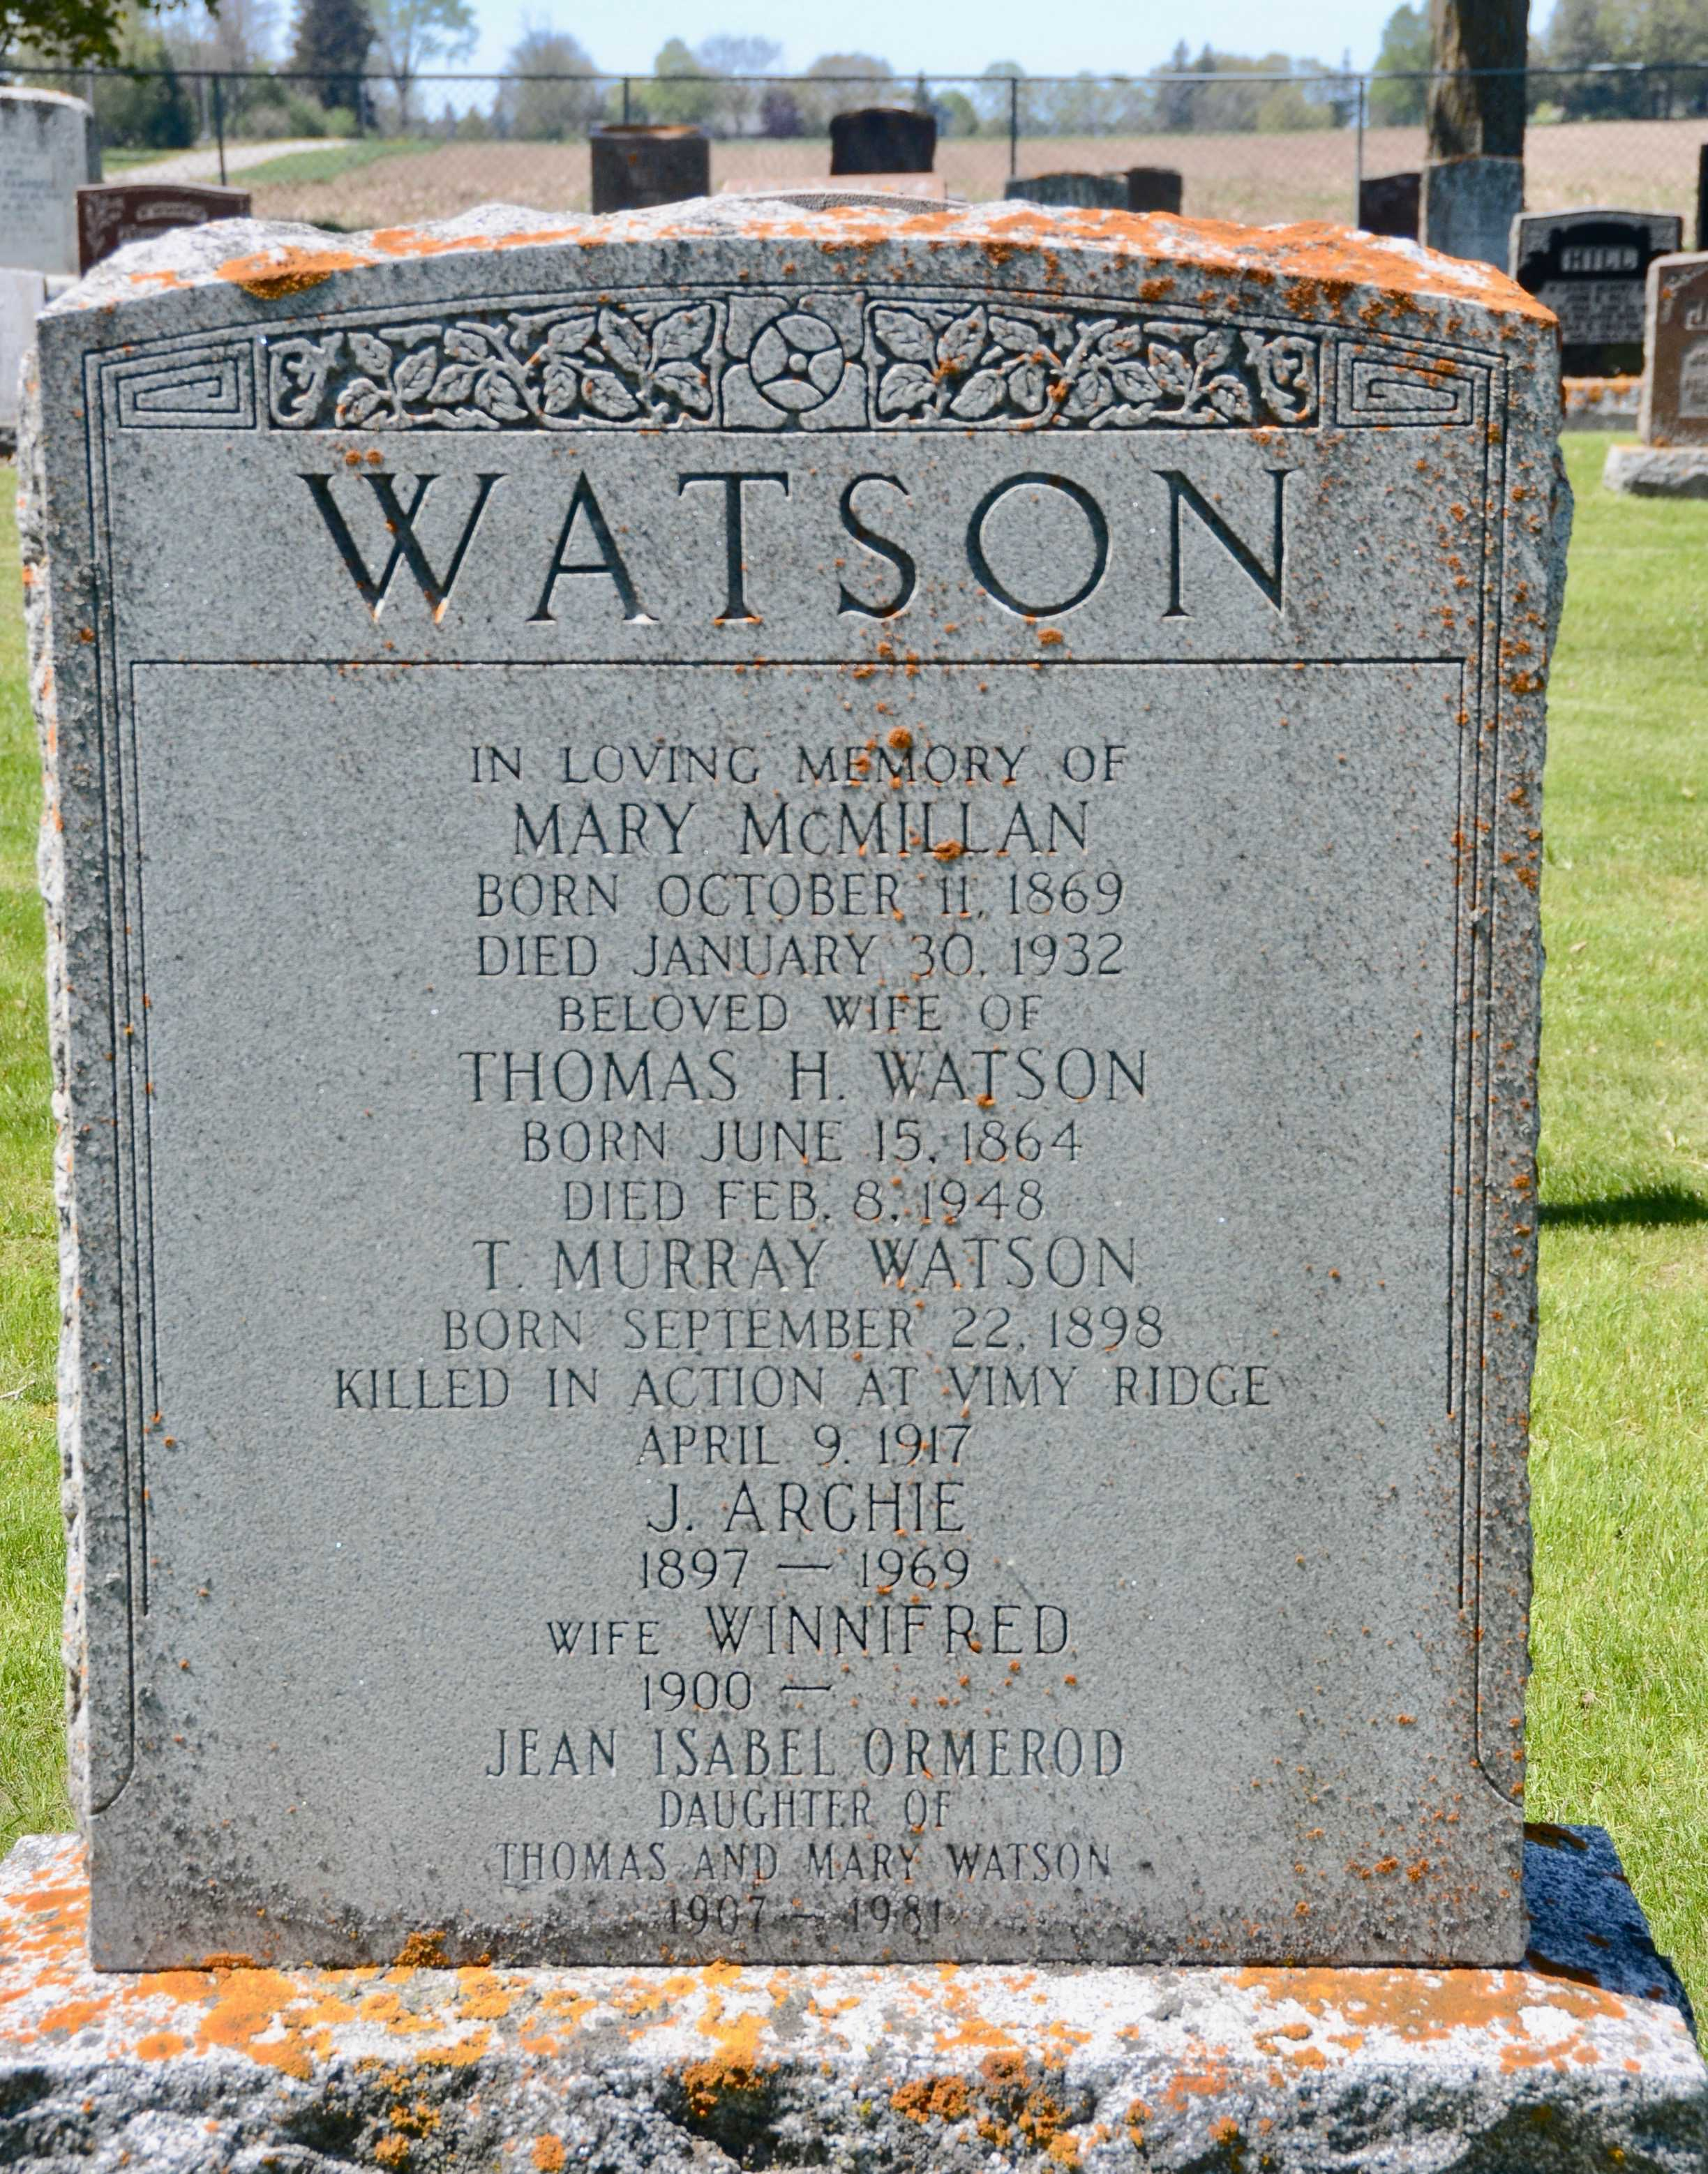 Family Headstone– Private Thomas Murray Watson is remembered on his family headstone in McNeil Cemetery, Brock Twp., Durham Region, Ontario.